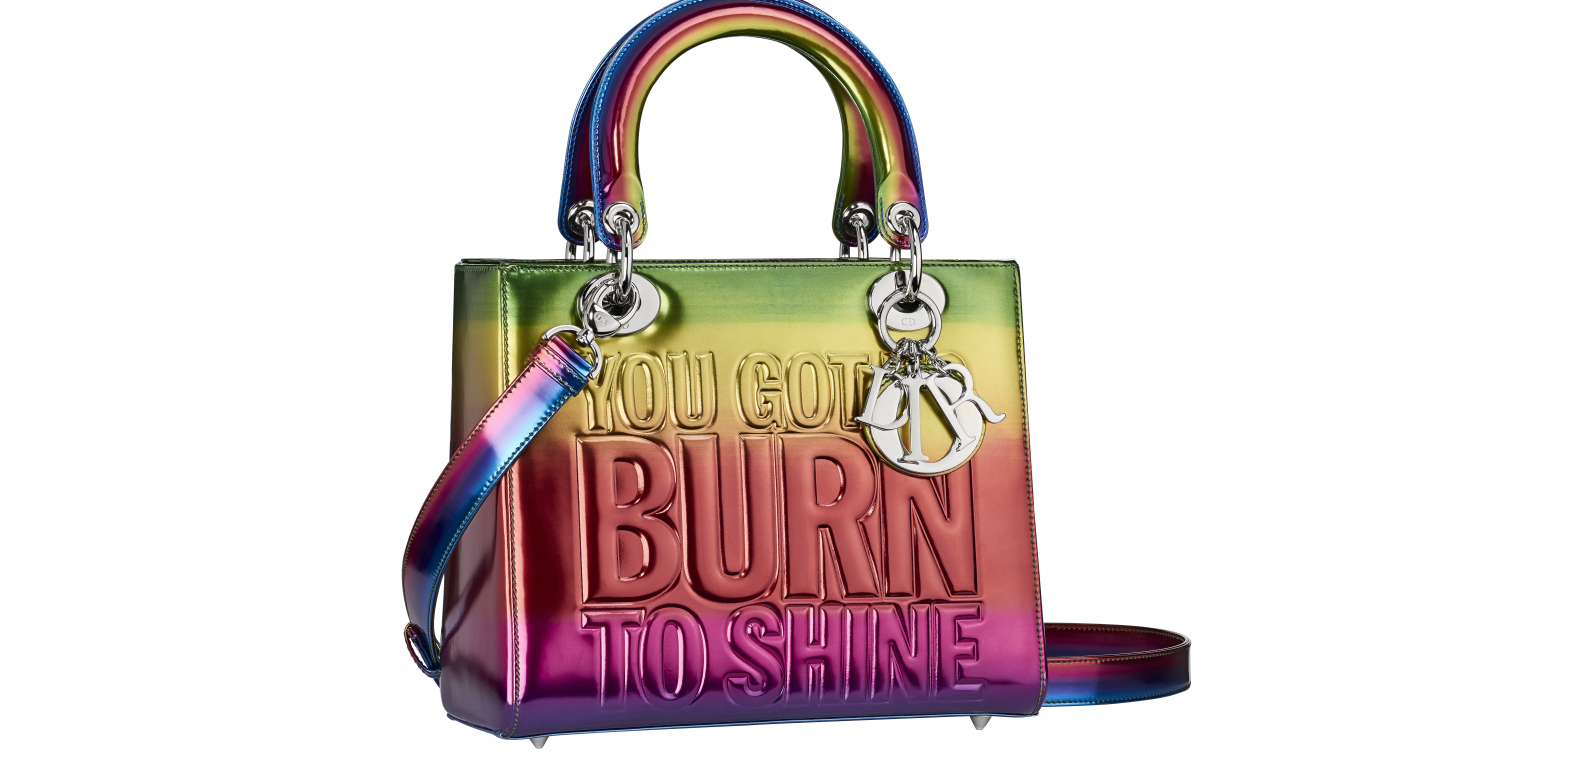 One of the two Lady Dior bags designed by John Giorno - Dior Lady Art #2. Photo courtesy of Frederic Leclere